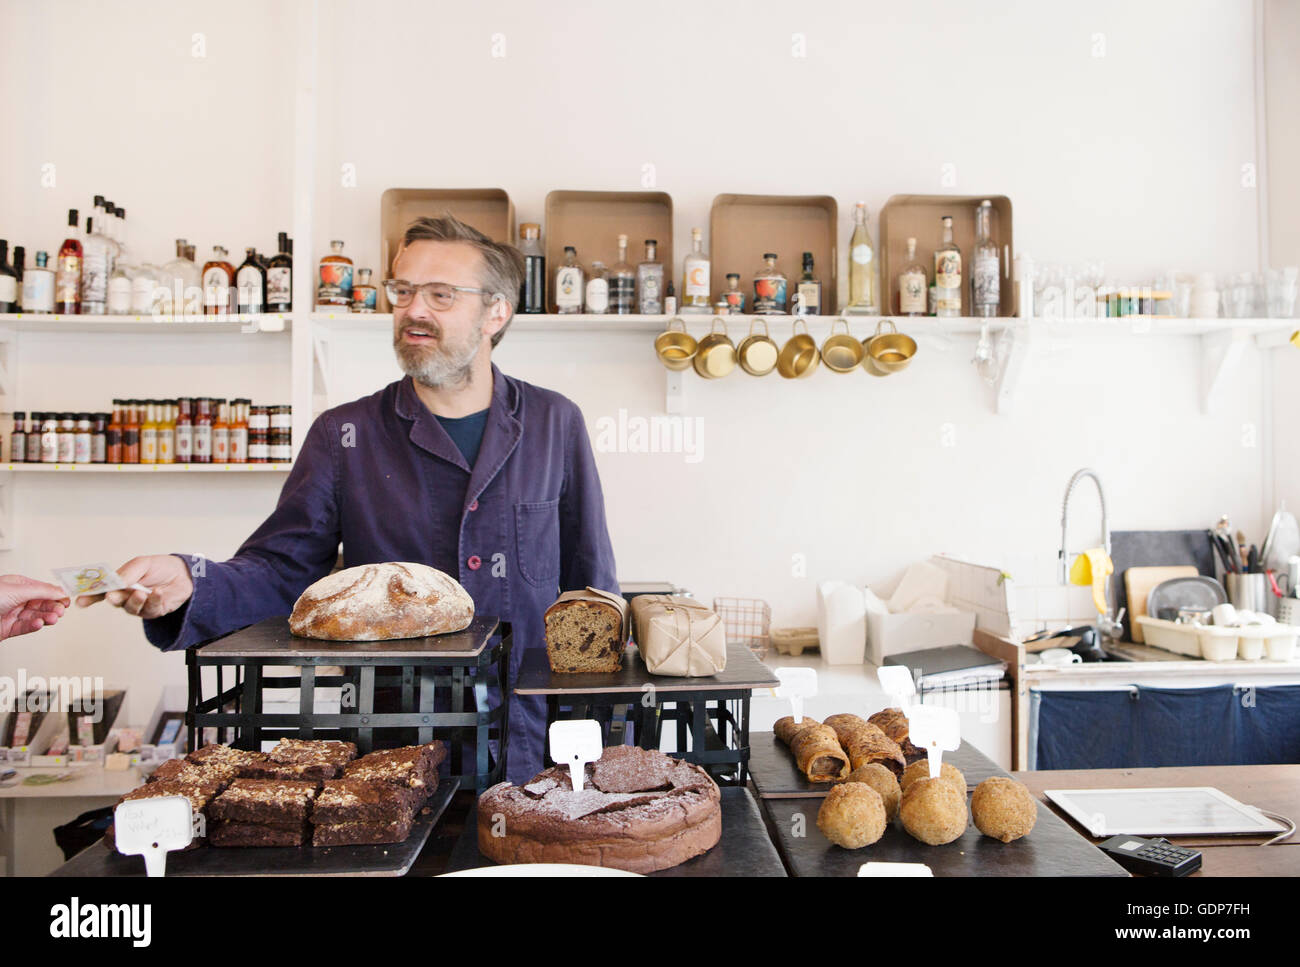 Customer handing banknote to cafe owner - Stock Image